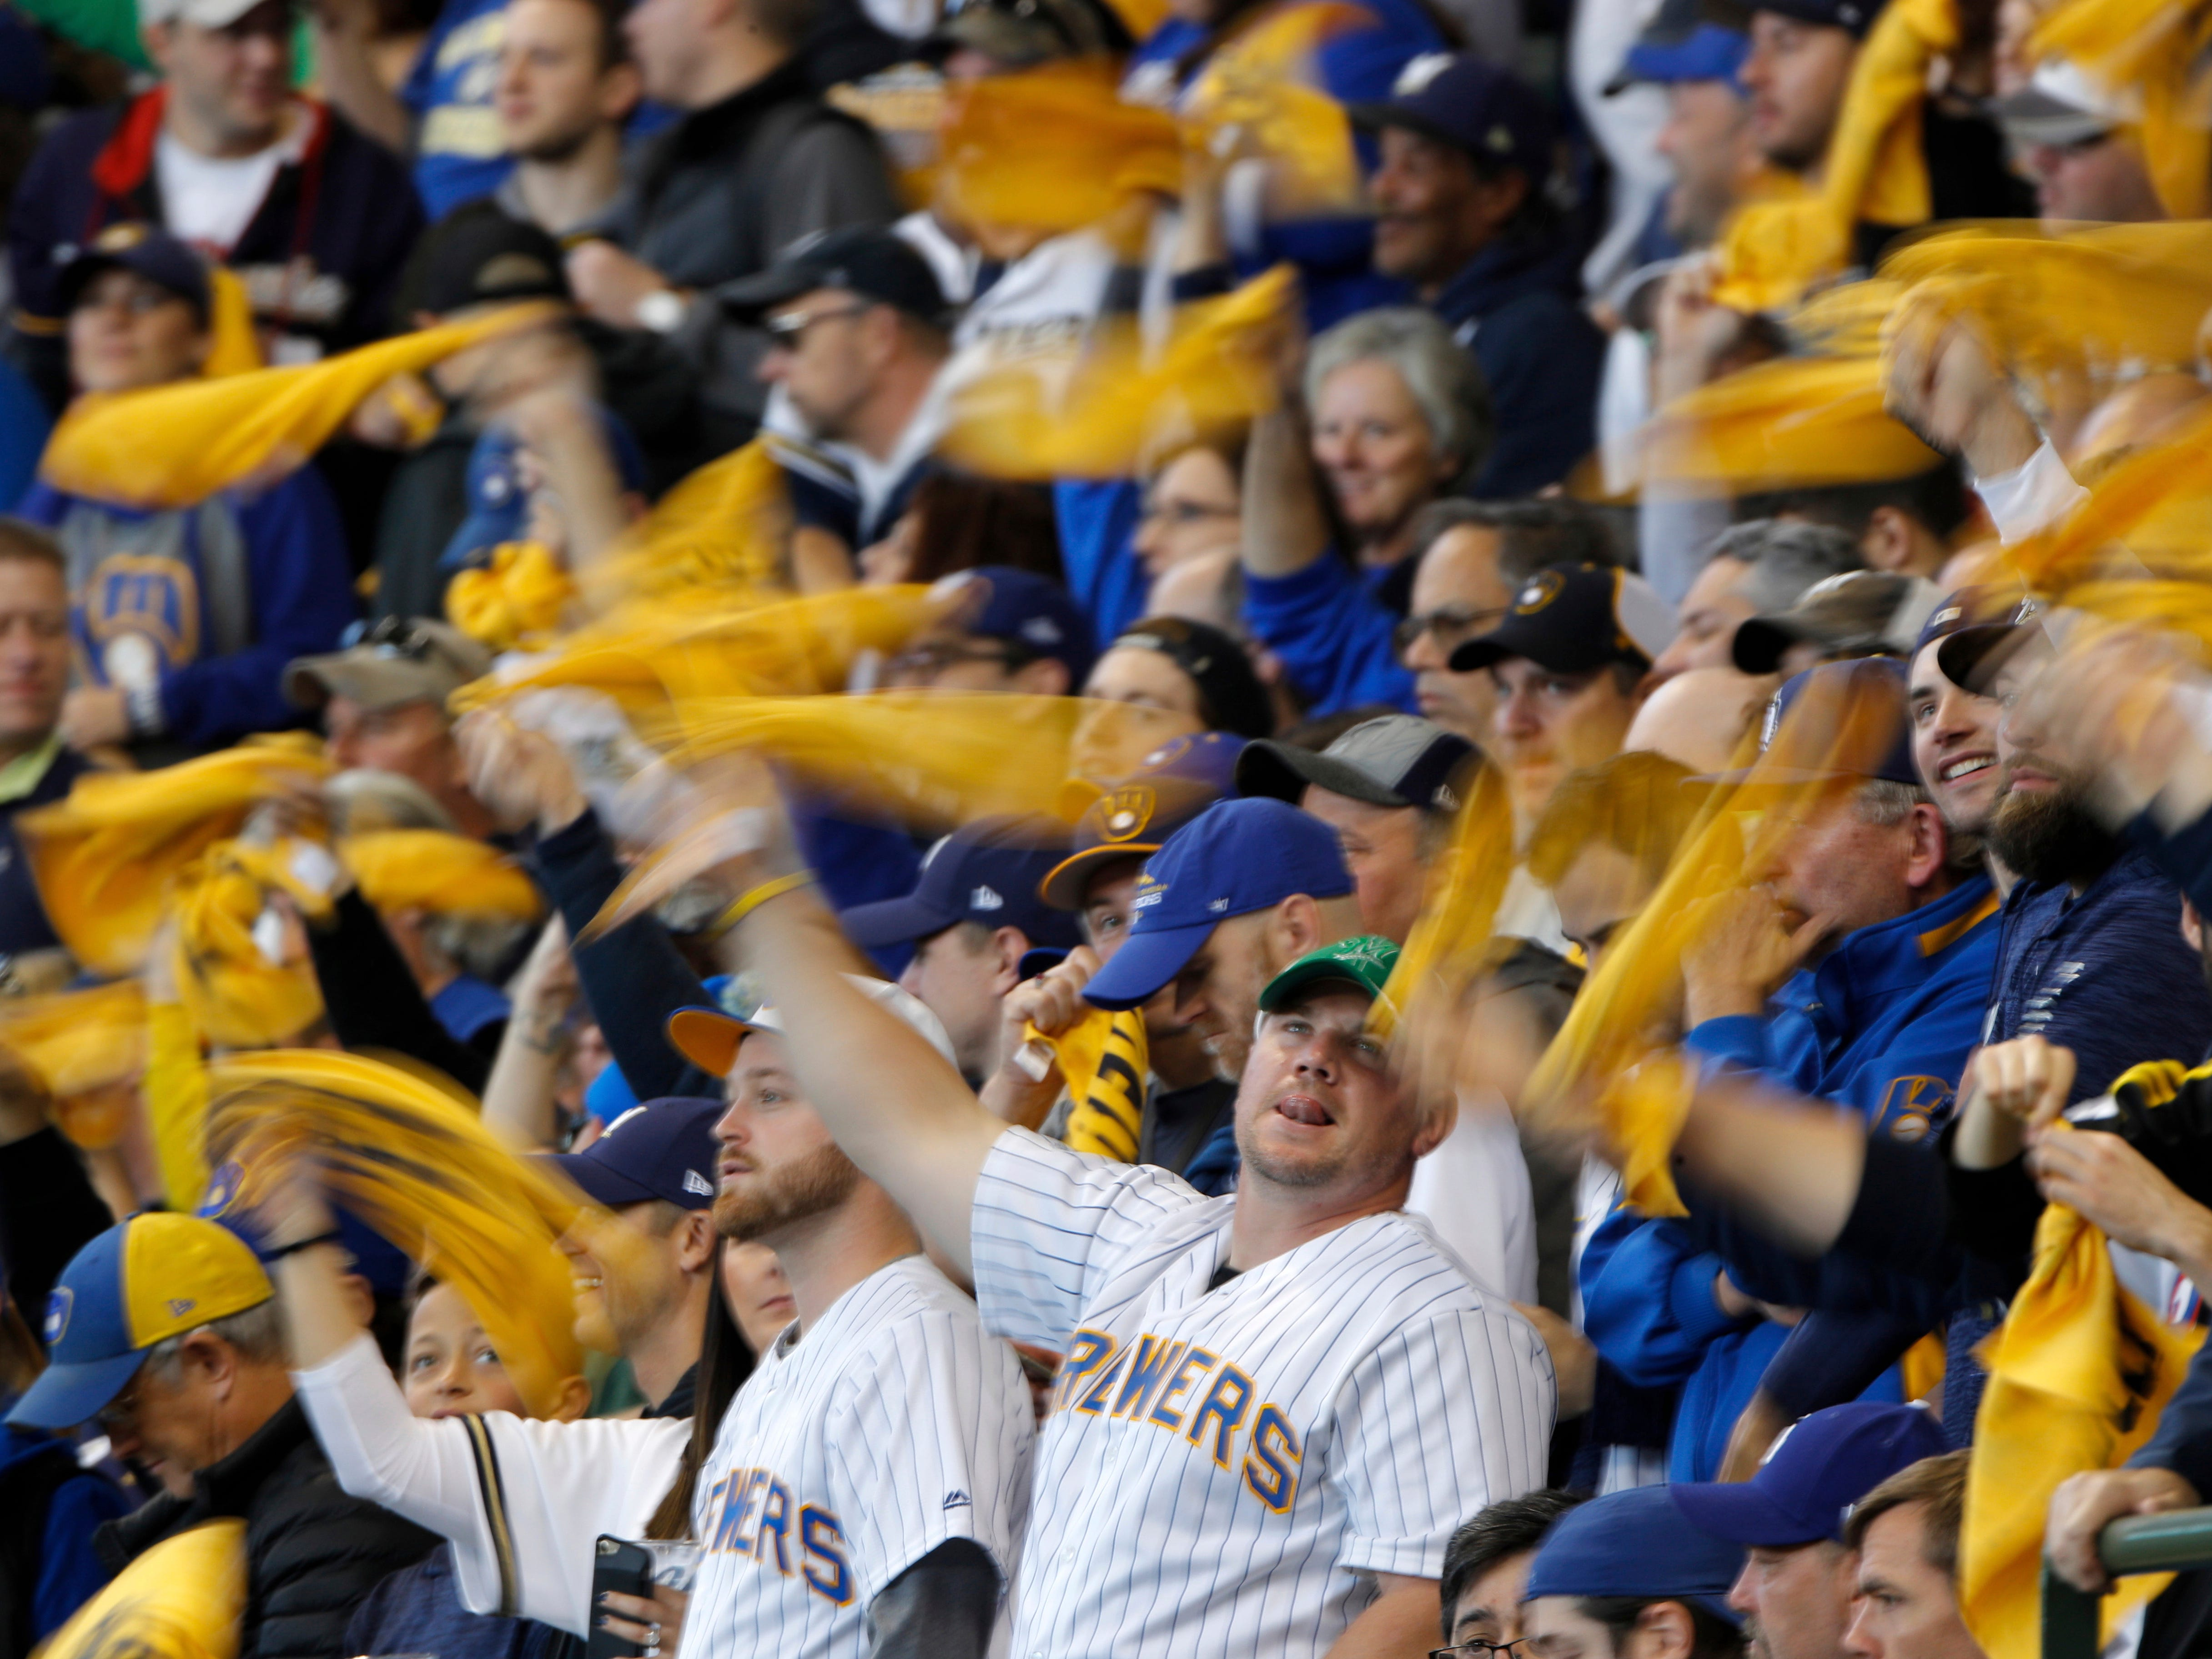 Fans cheer before Game 2 of the National League Championship Series baseball game between the Milwaukee Brewers and the Los Angeles Dodgers.